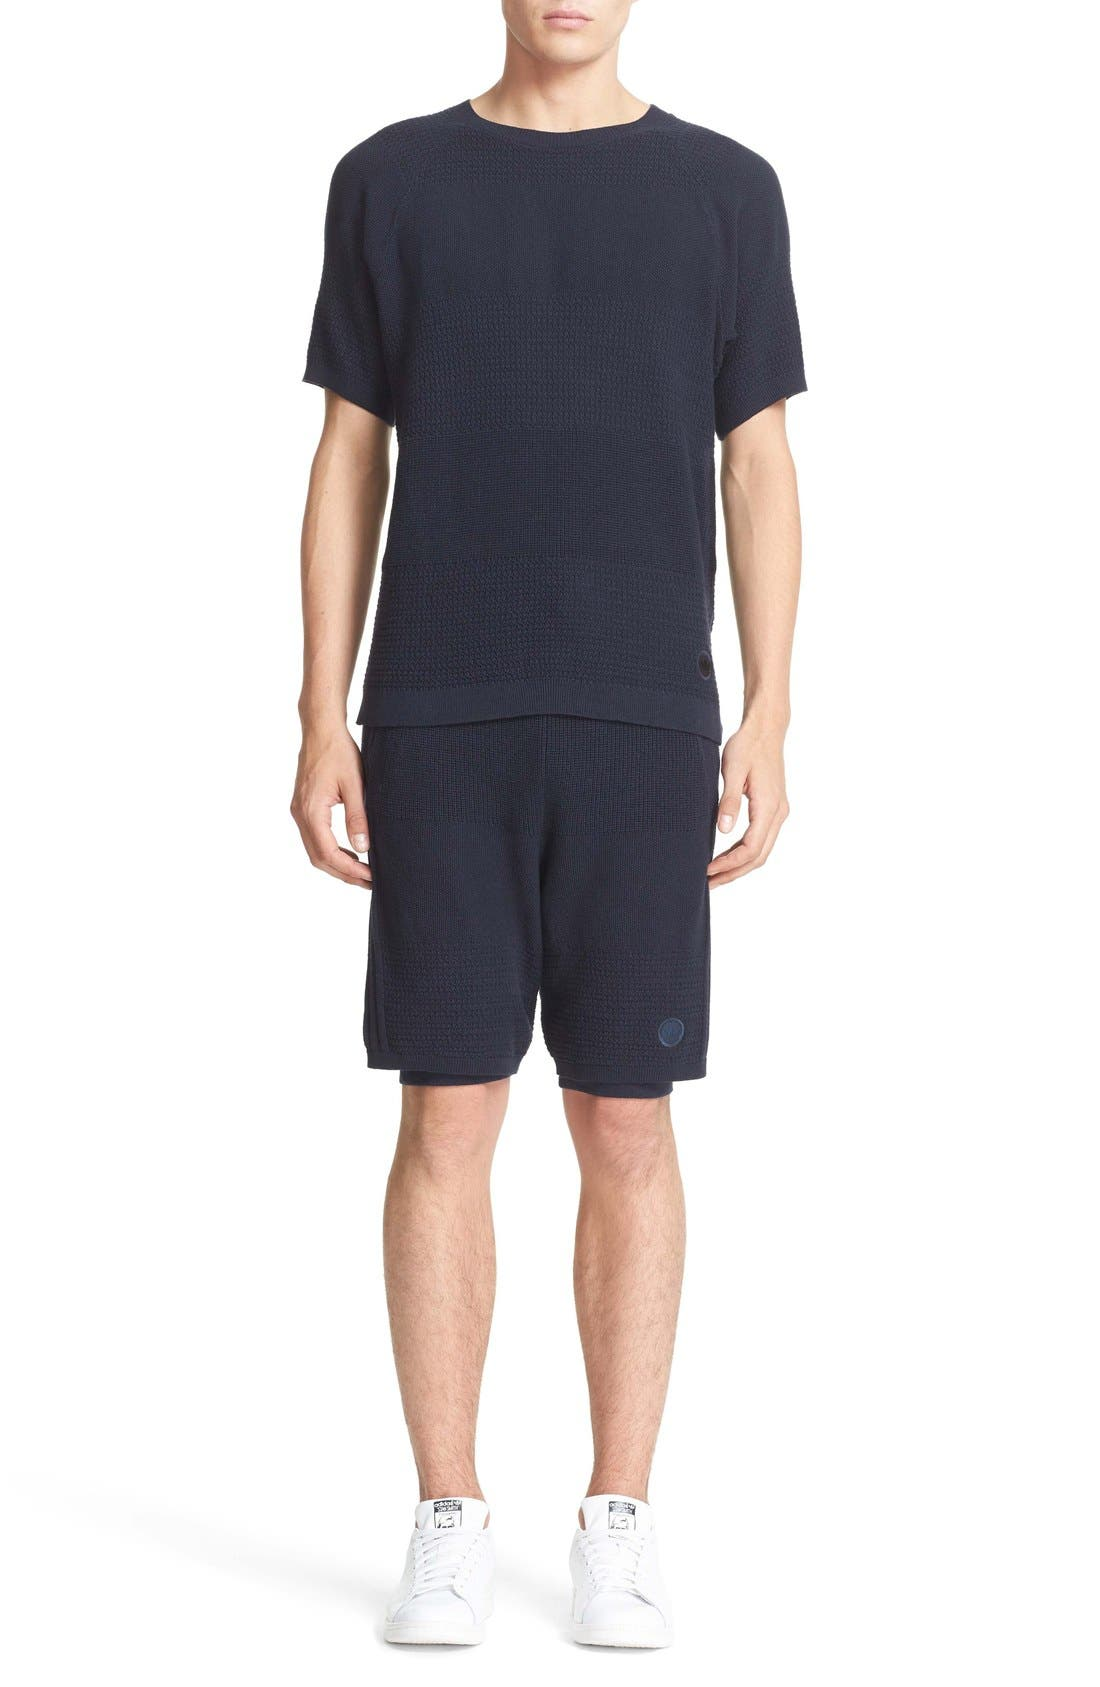 Linear Texture Knit Shorts,                             Alternate thumbnail 6, color,                             Night Navy